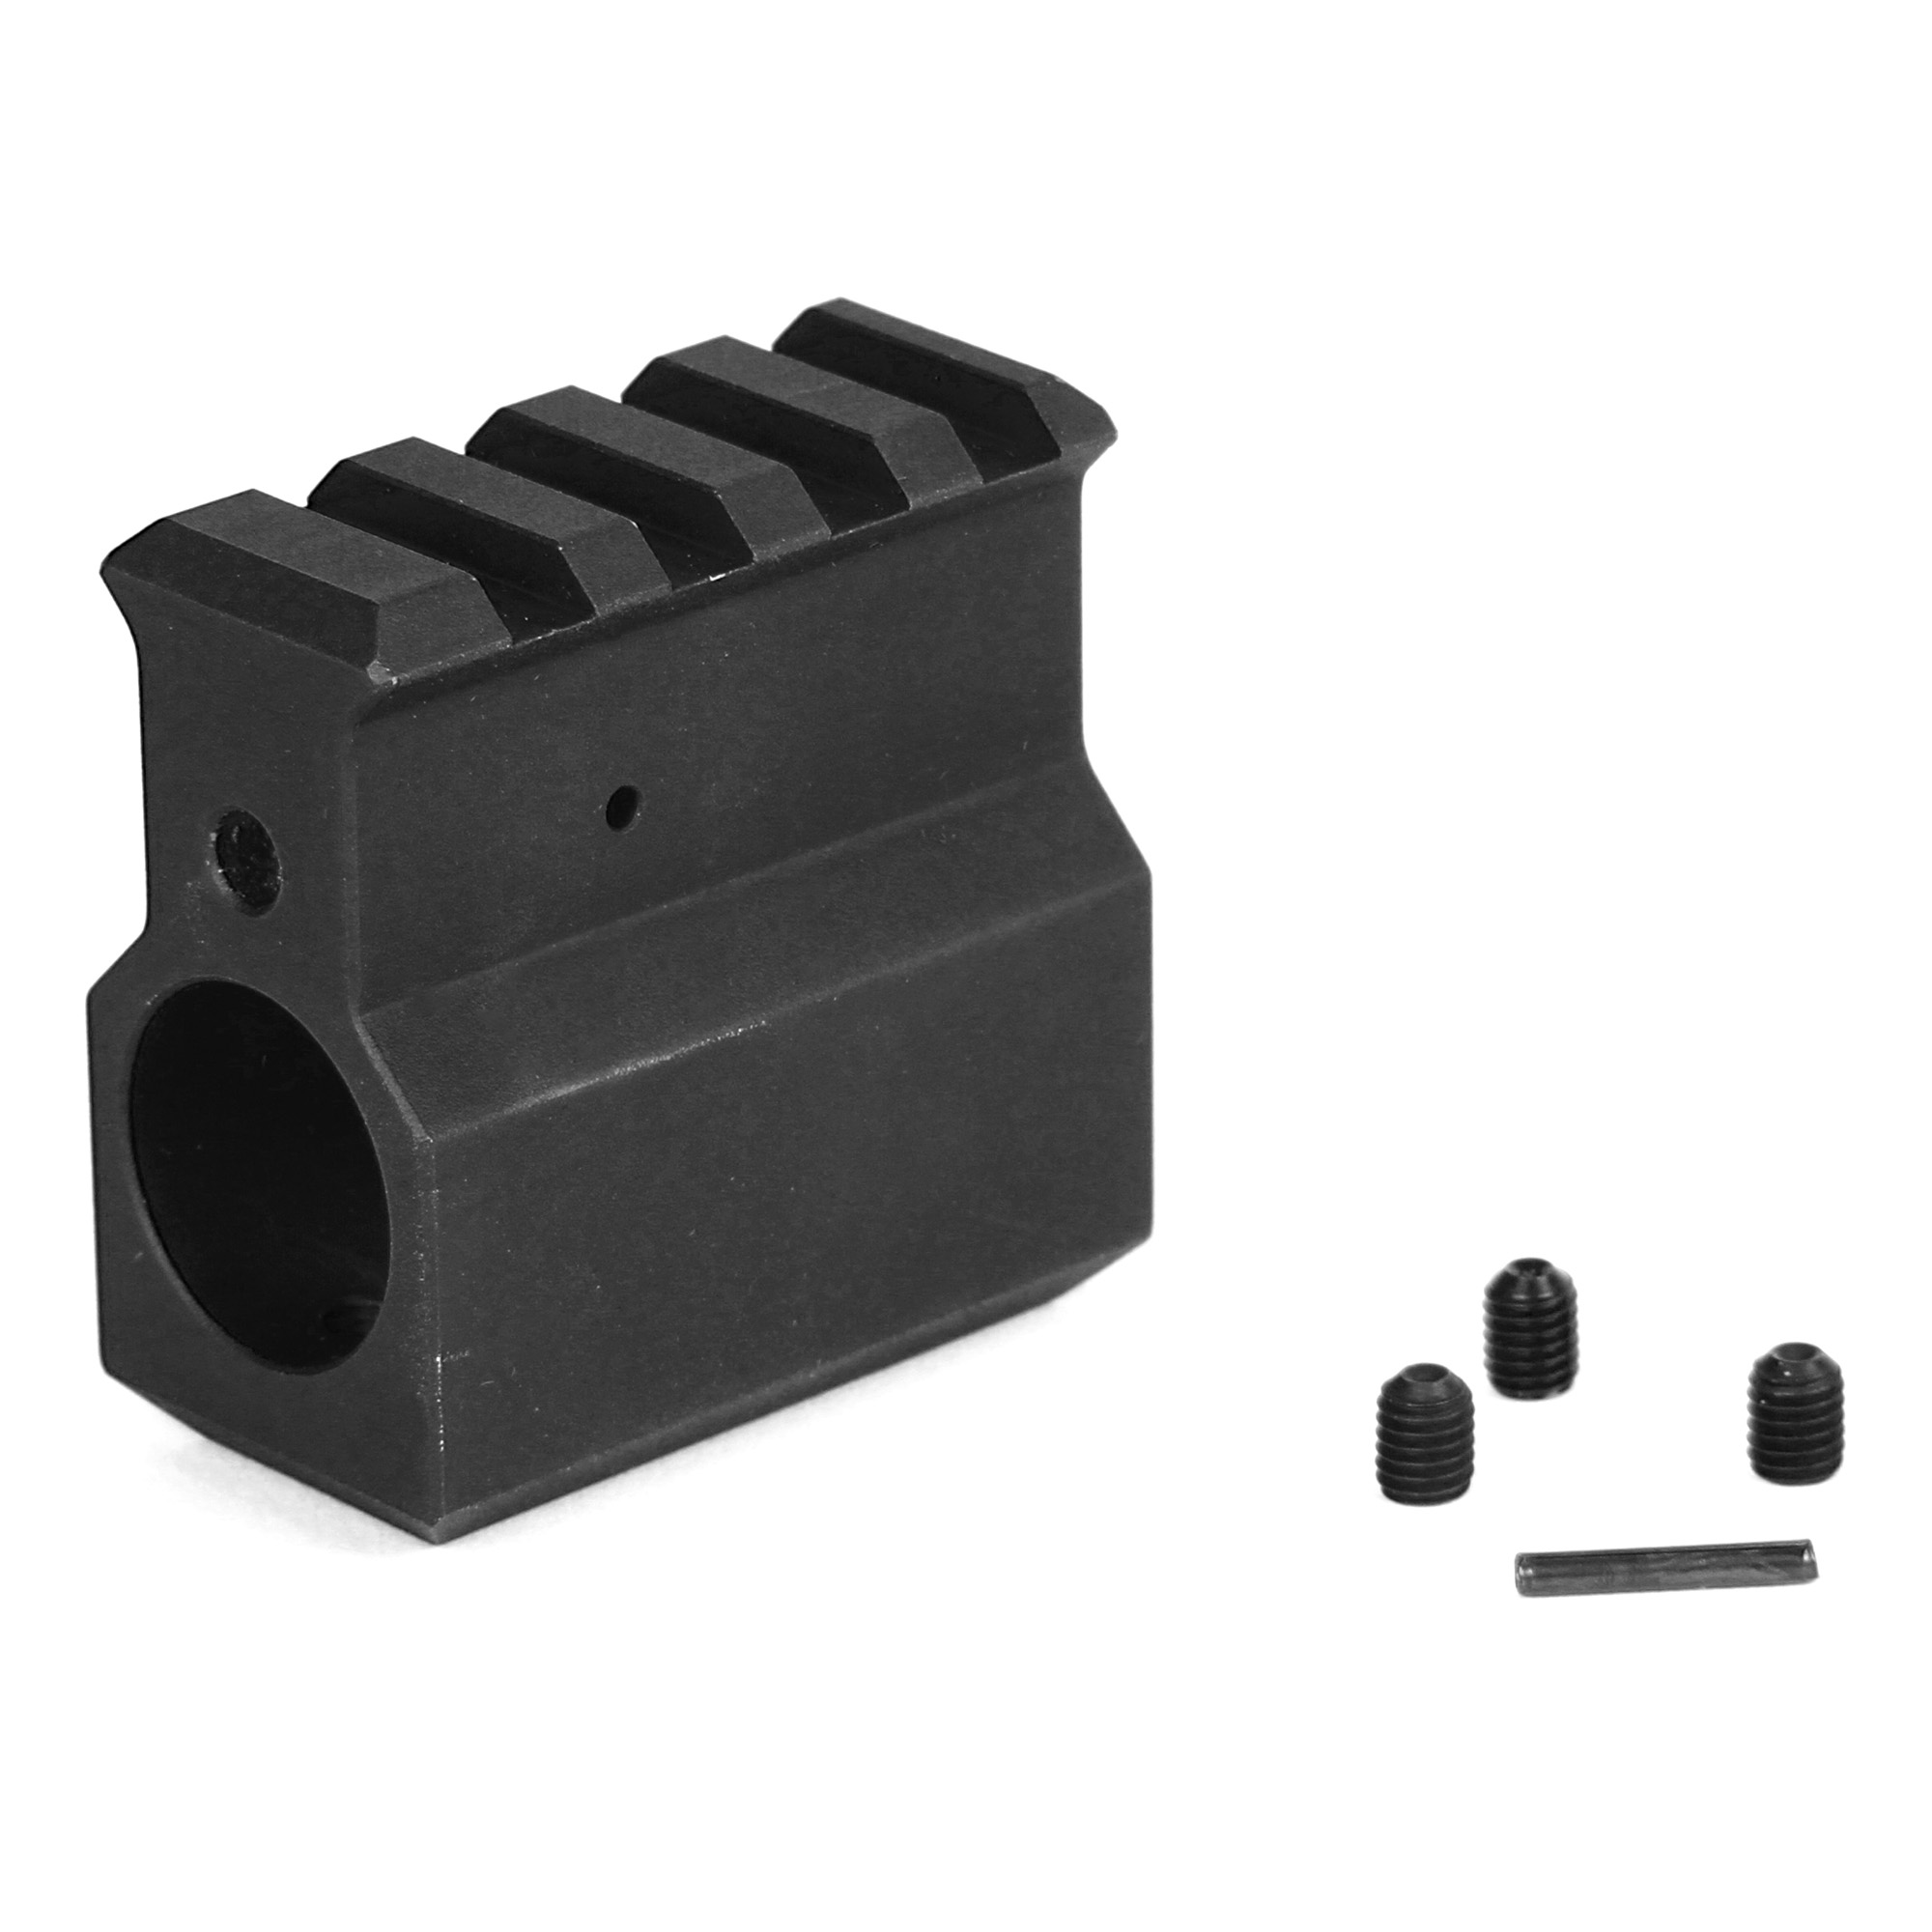 Lbe .750 Gas Block W/rail Blk